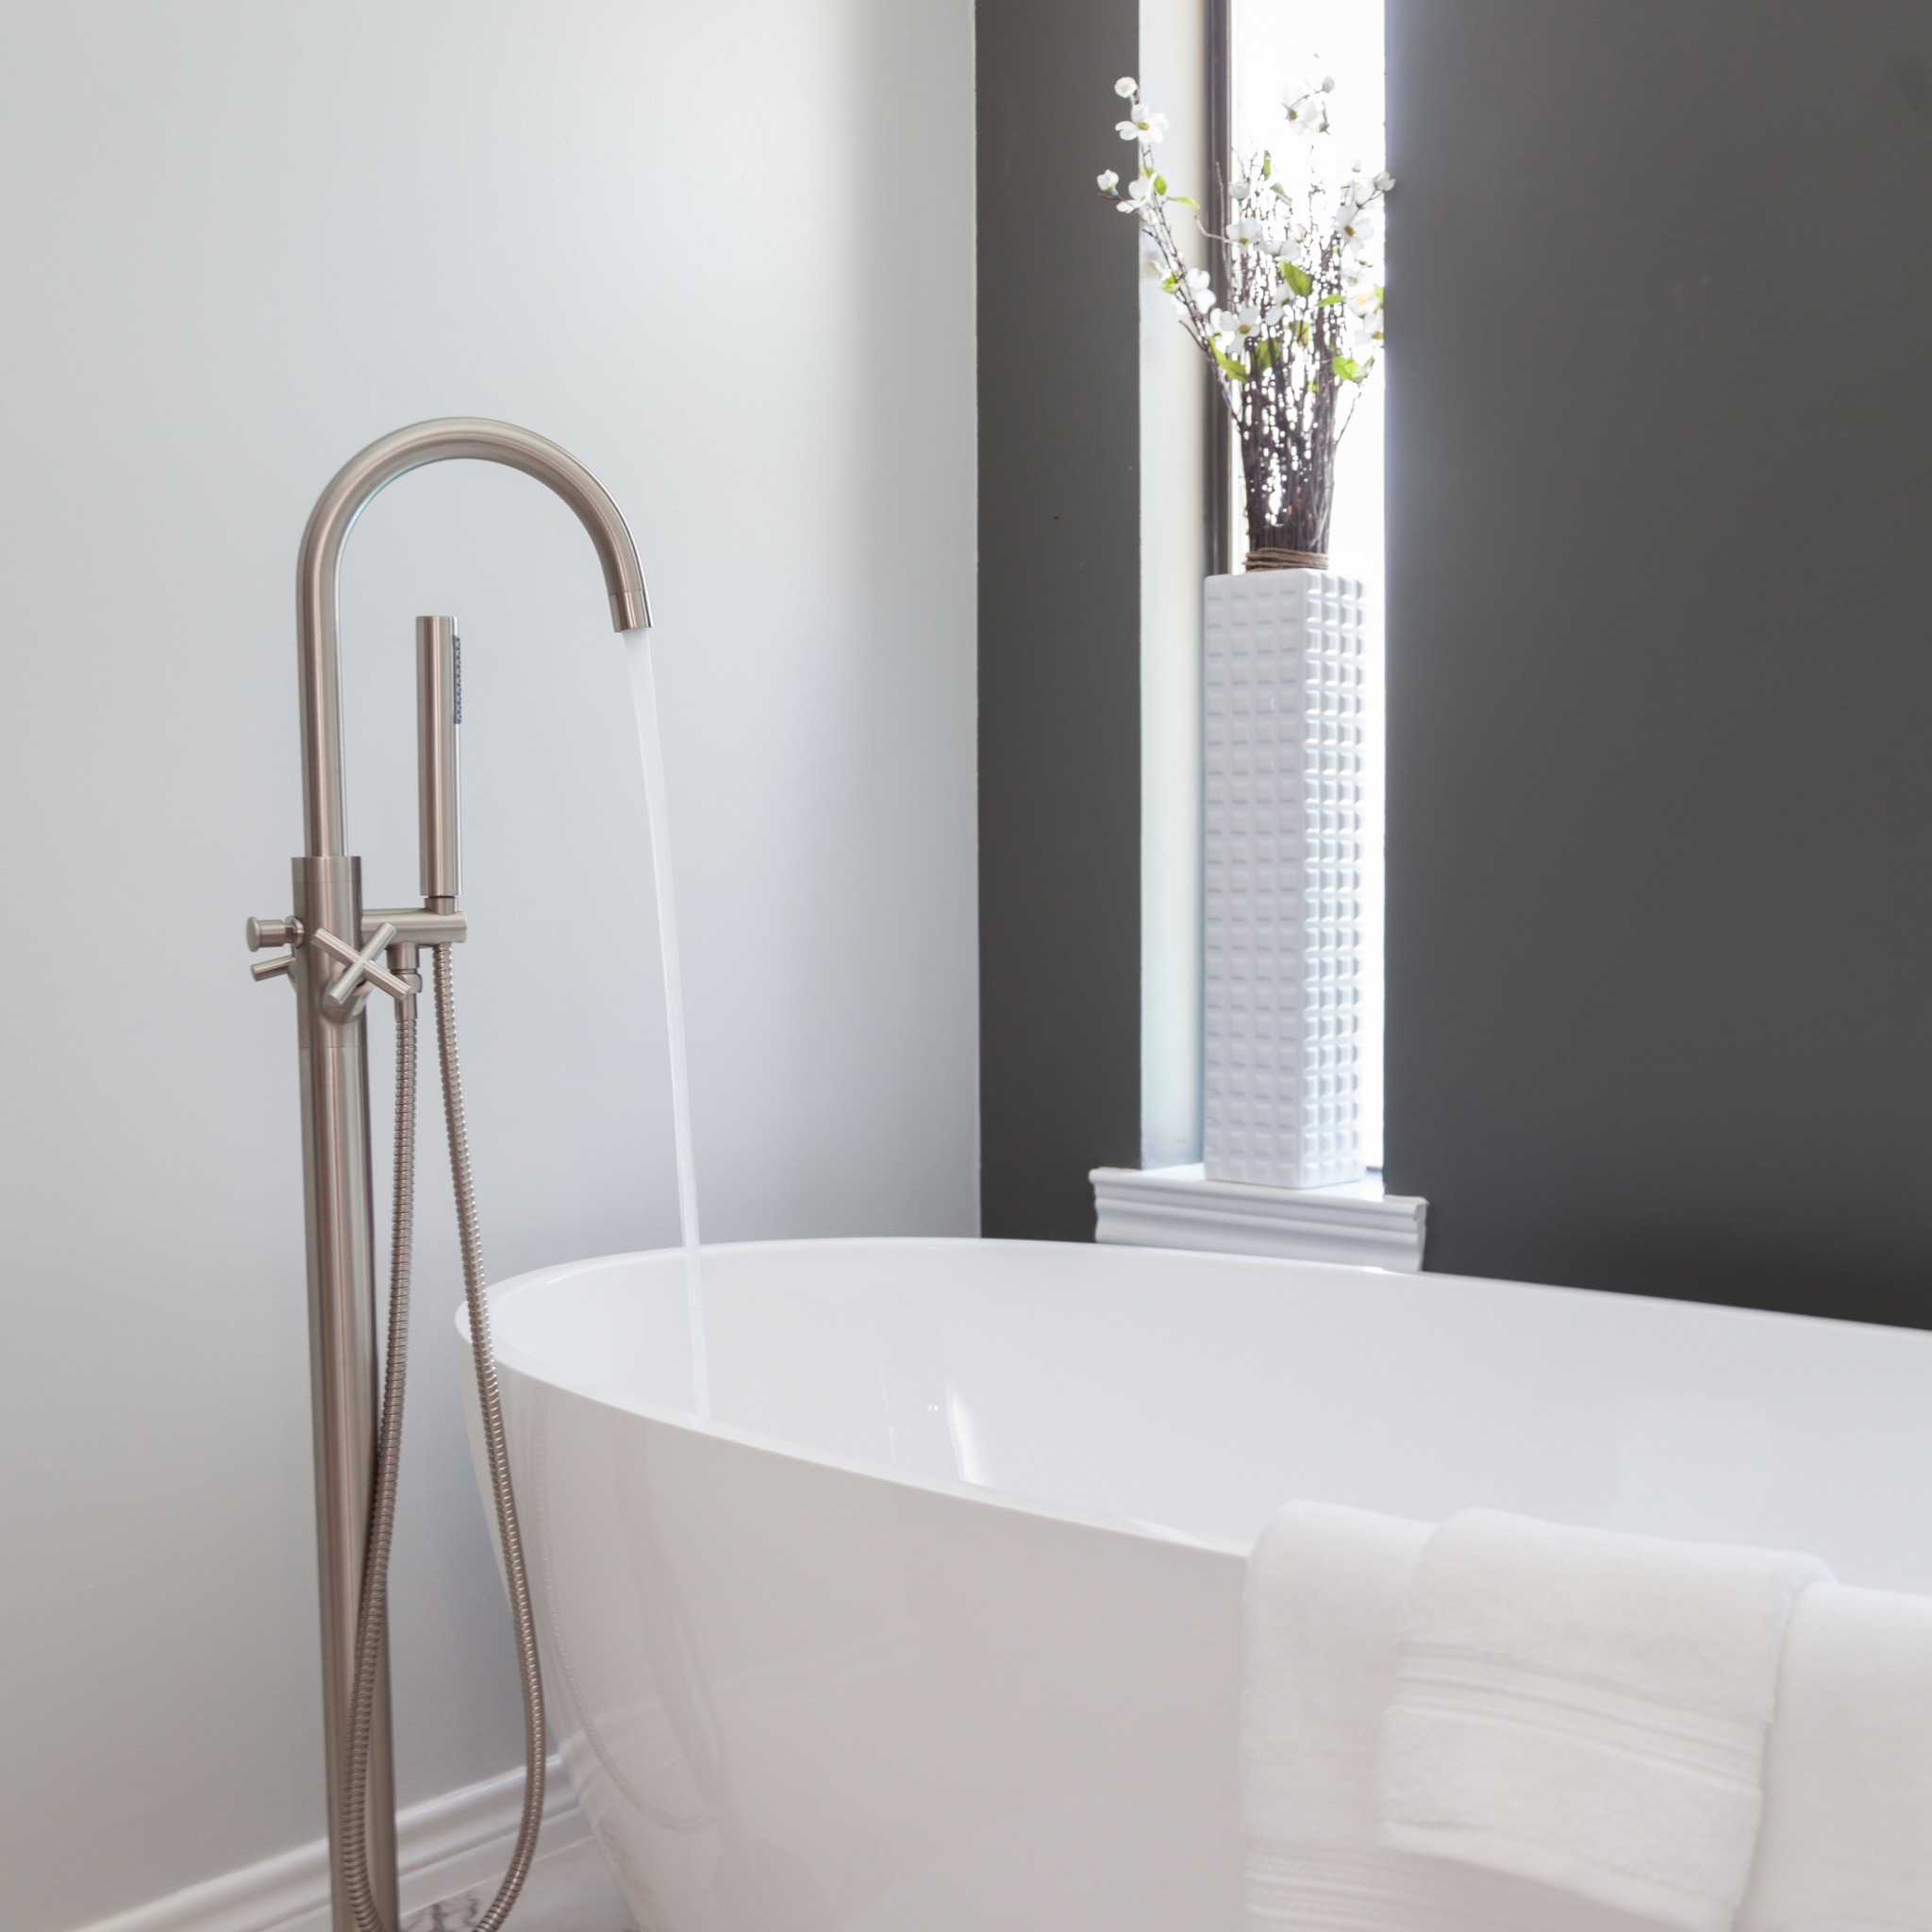 Free standing bathtub, tub filler, modern bathtub and bathroom, black and white accent tile, window over tub